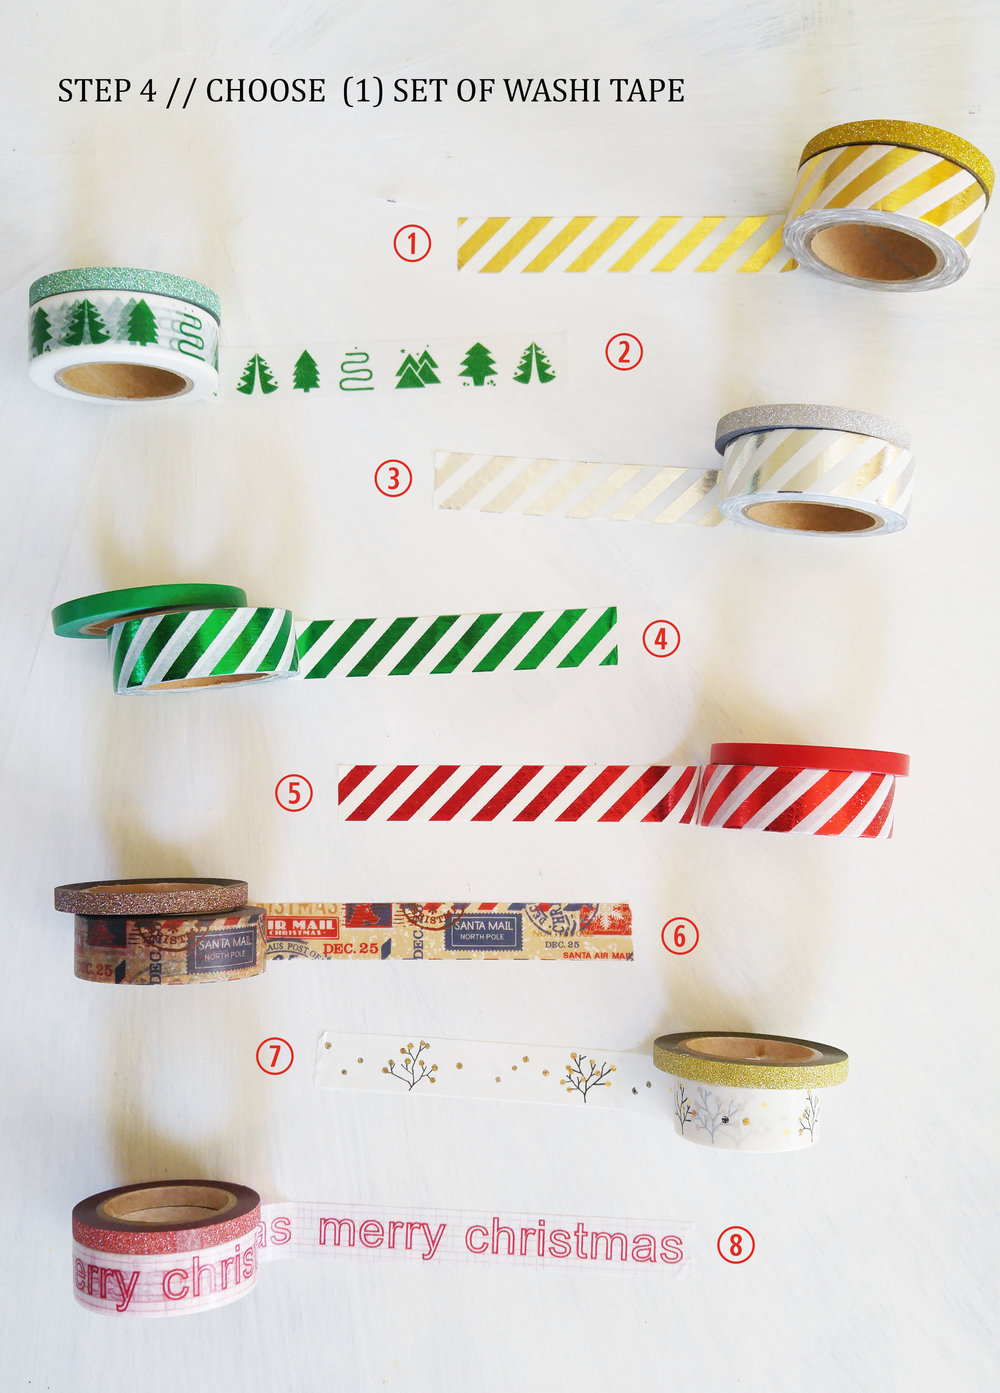 washi tape samples stock.jpg